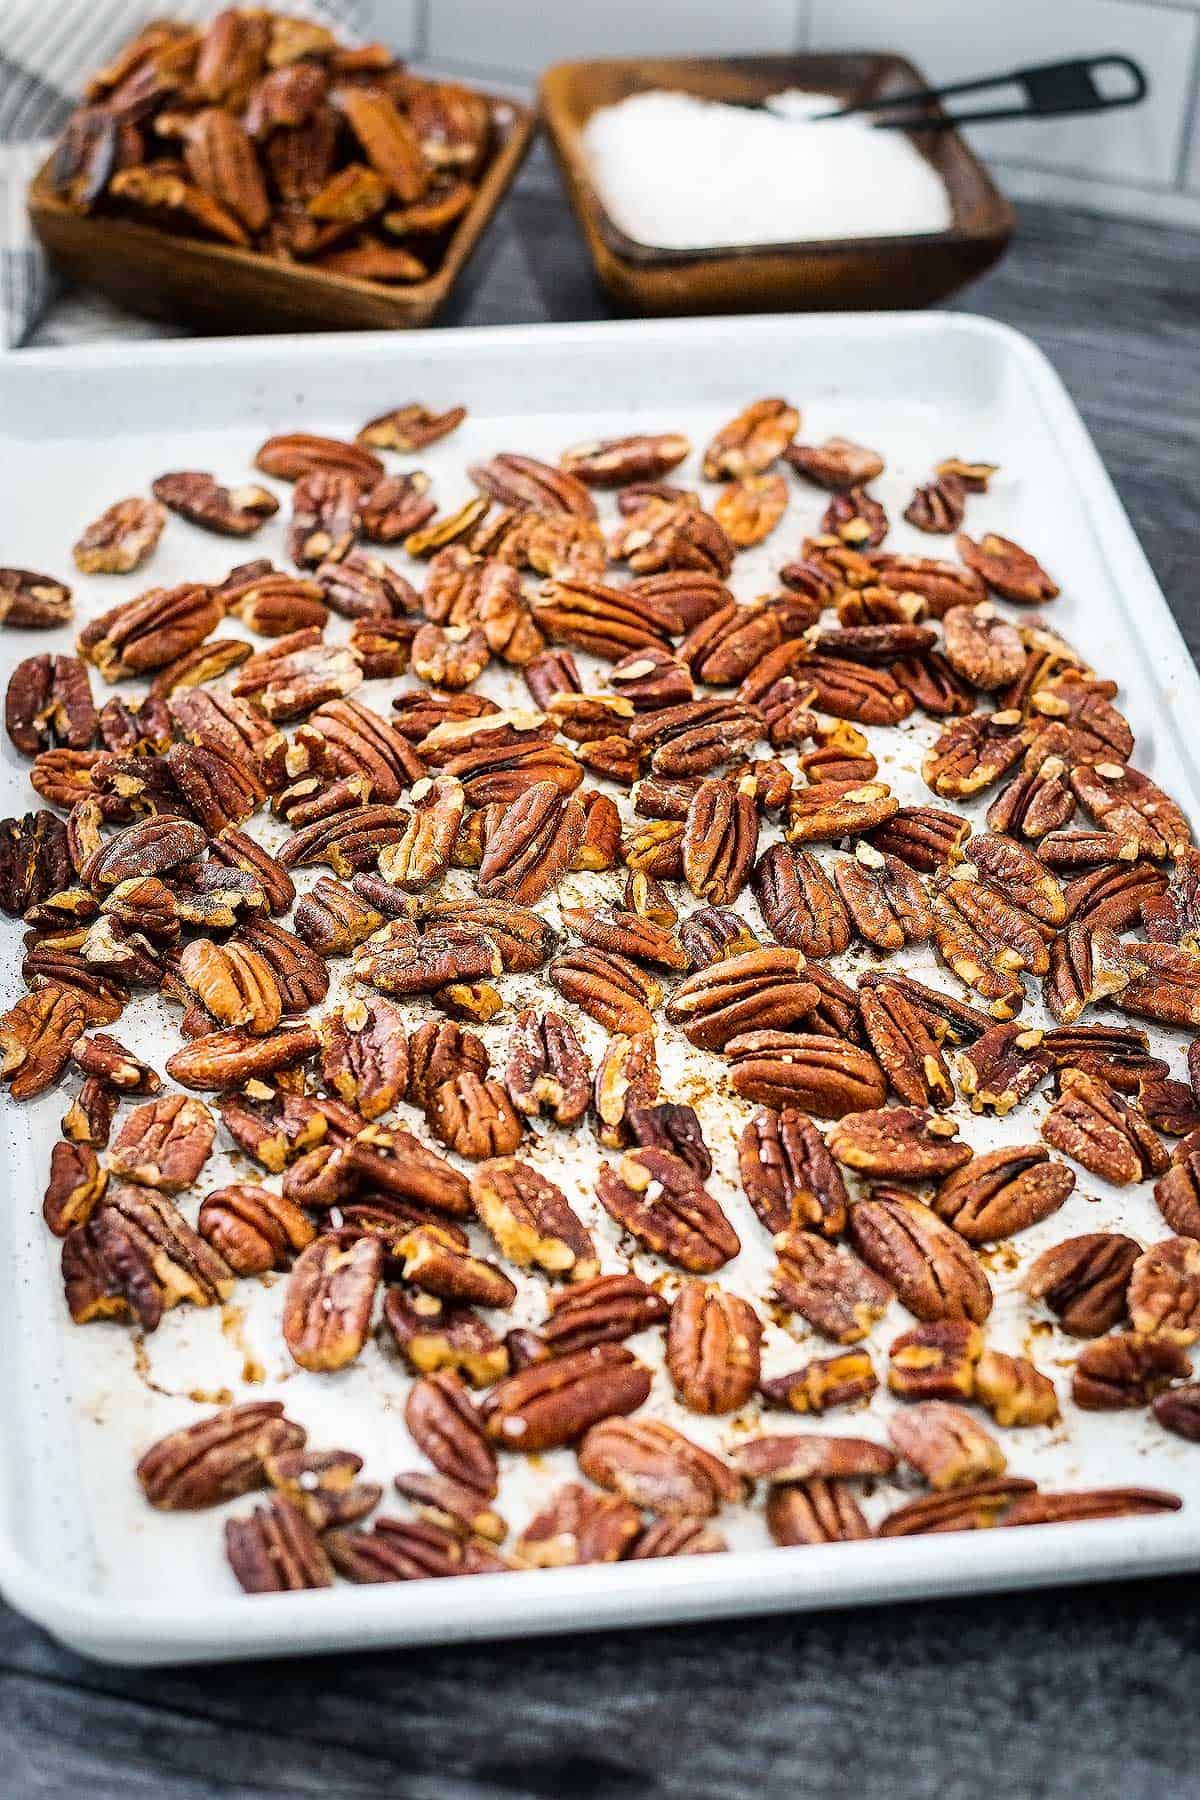 Roasted pecans fresh out of the oven on a baking tray.